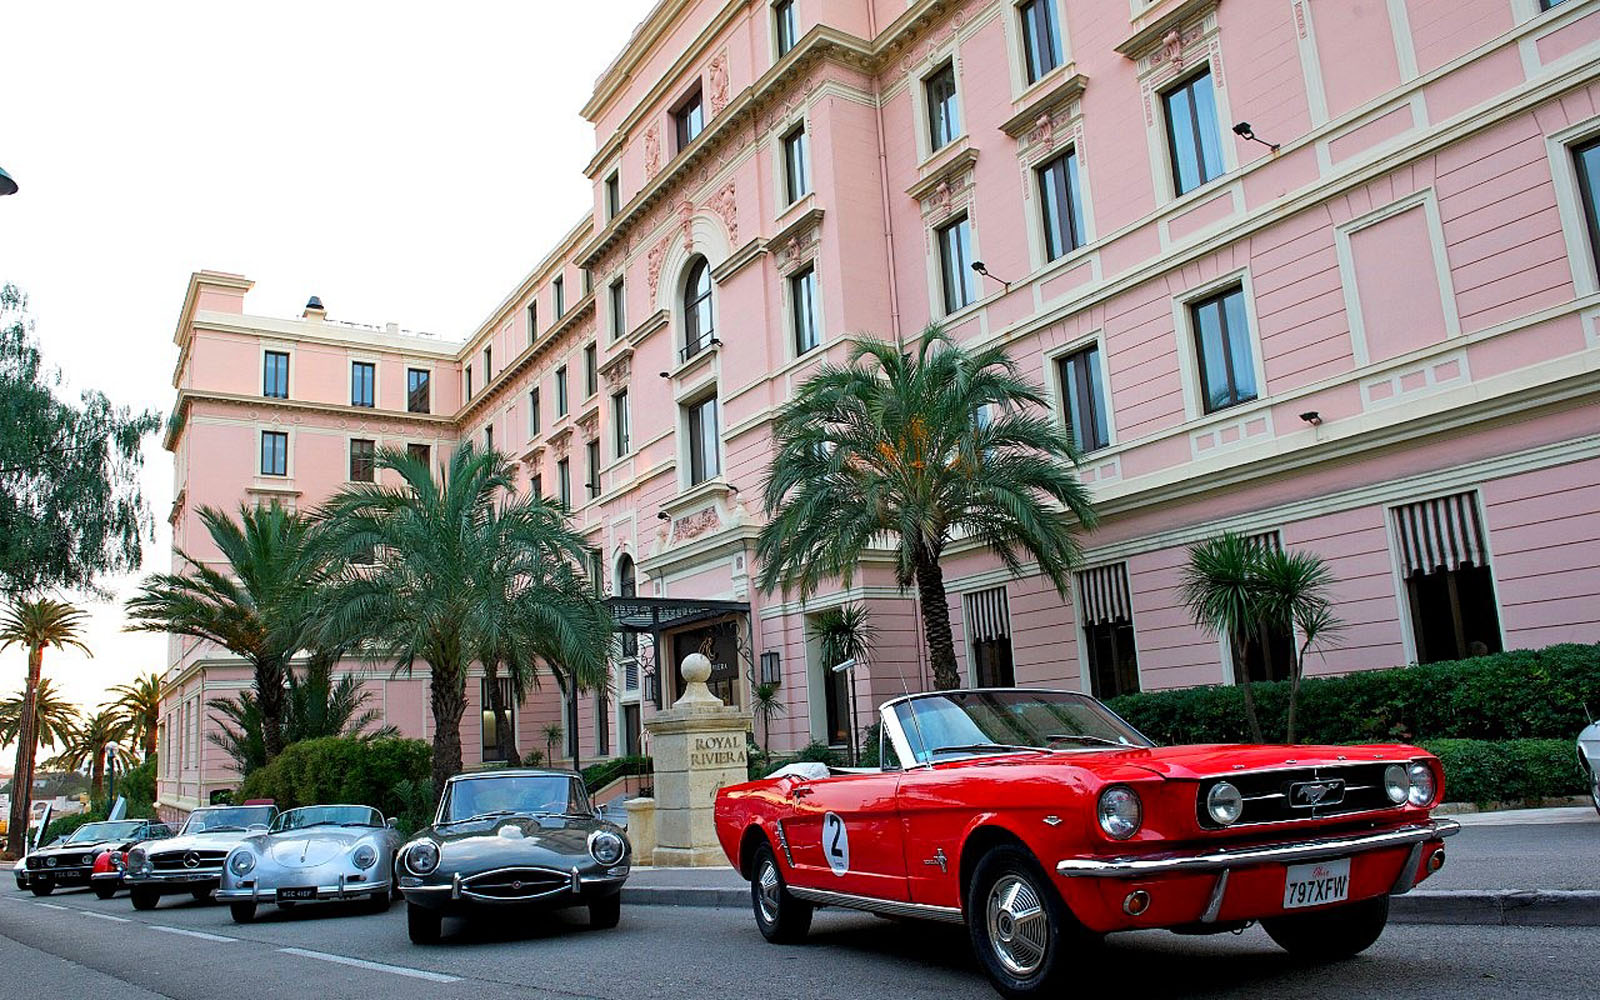 Incentive Royal-Riviera - Rallye vintage Cars